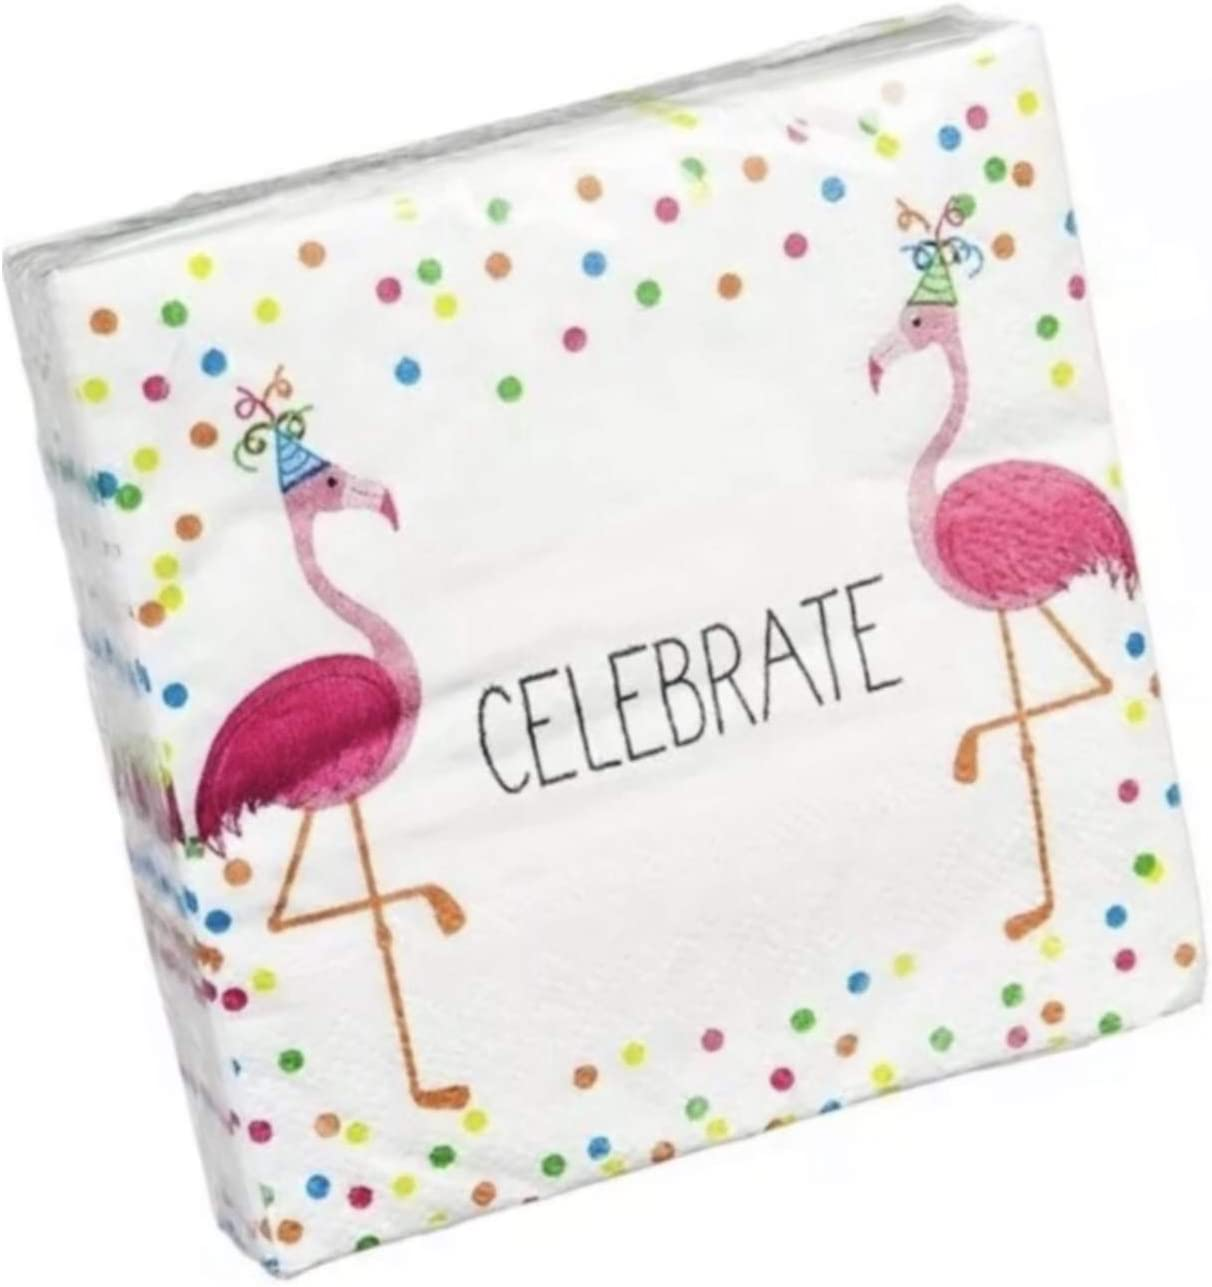 Cypress Home Flamingos Celebrate Birthday Cocktail Beverage Paper Napkins, 40 ct